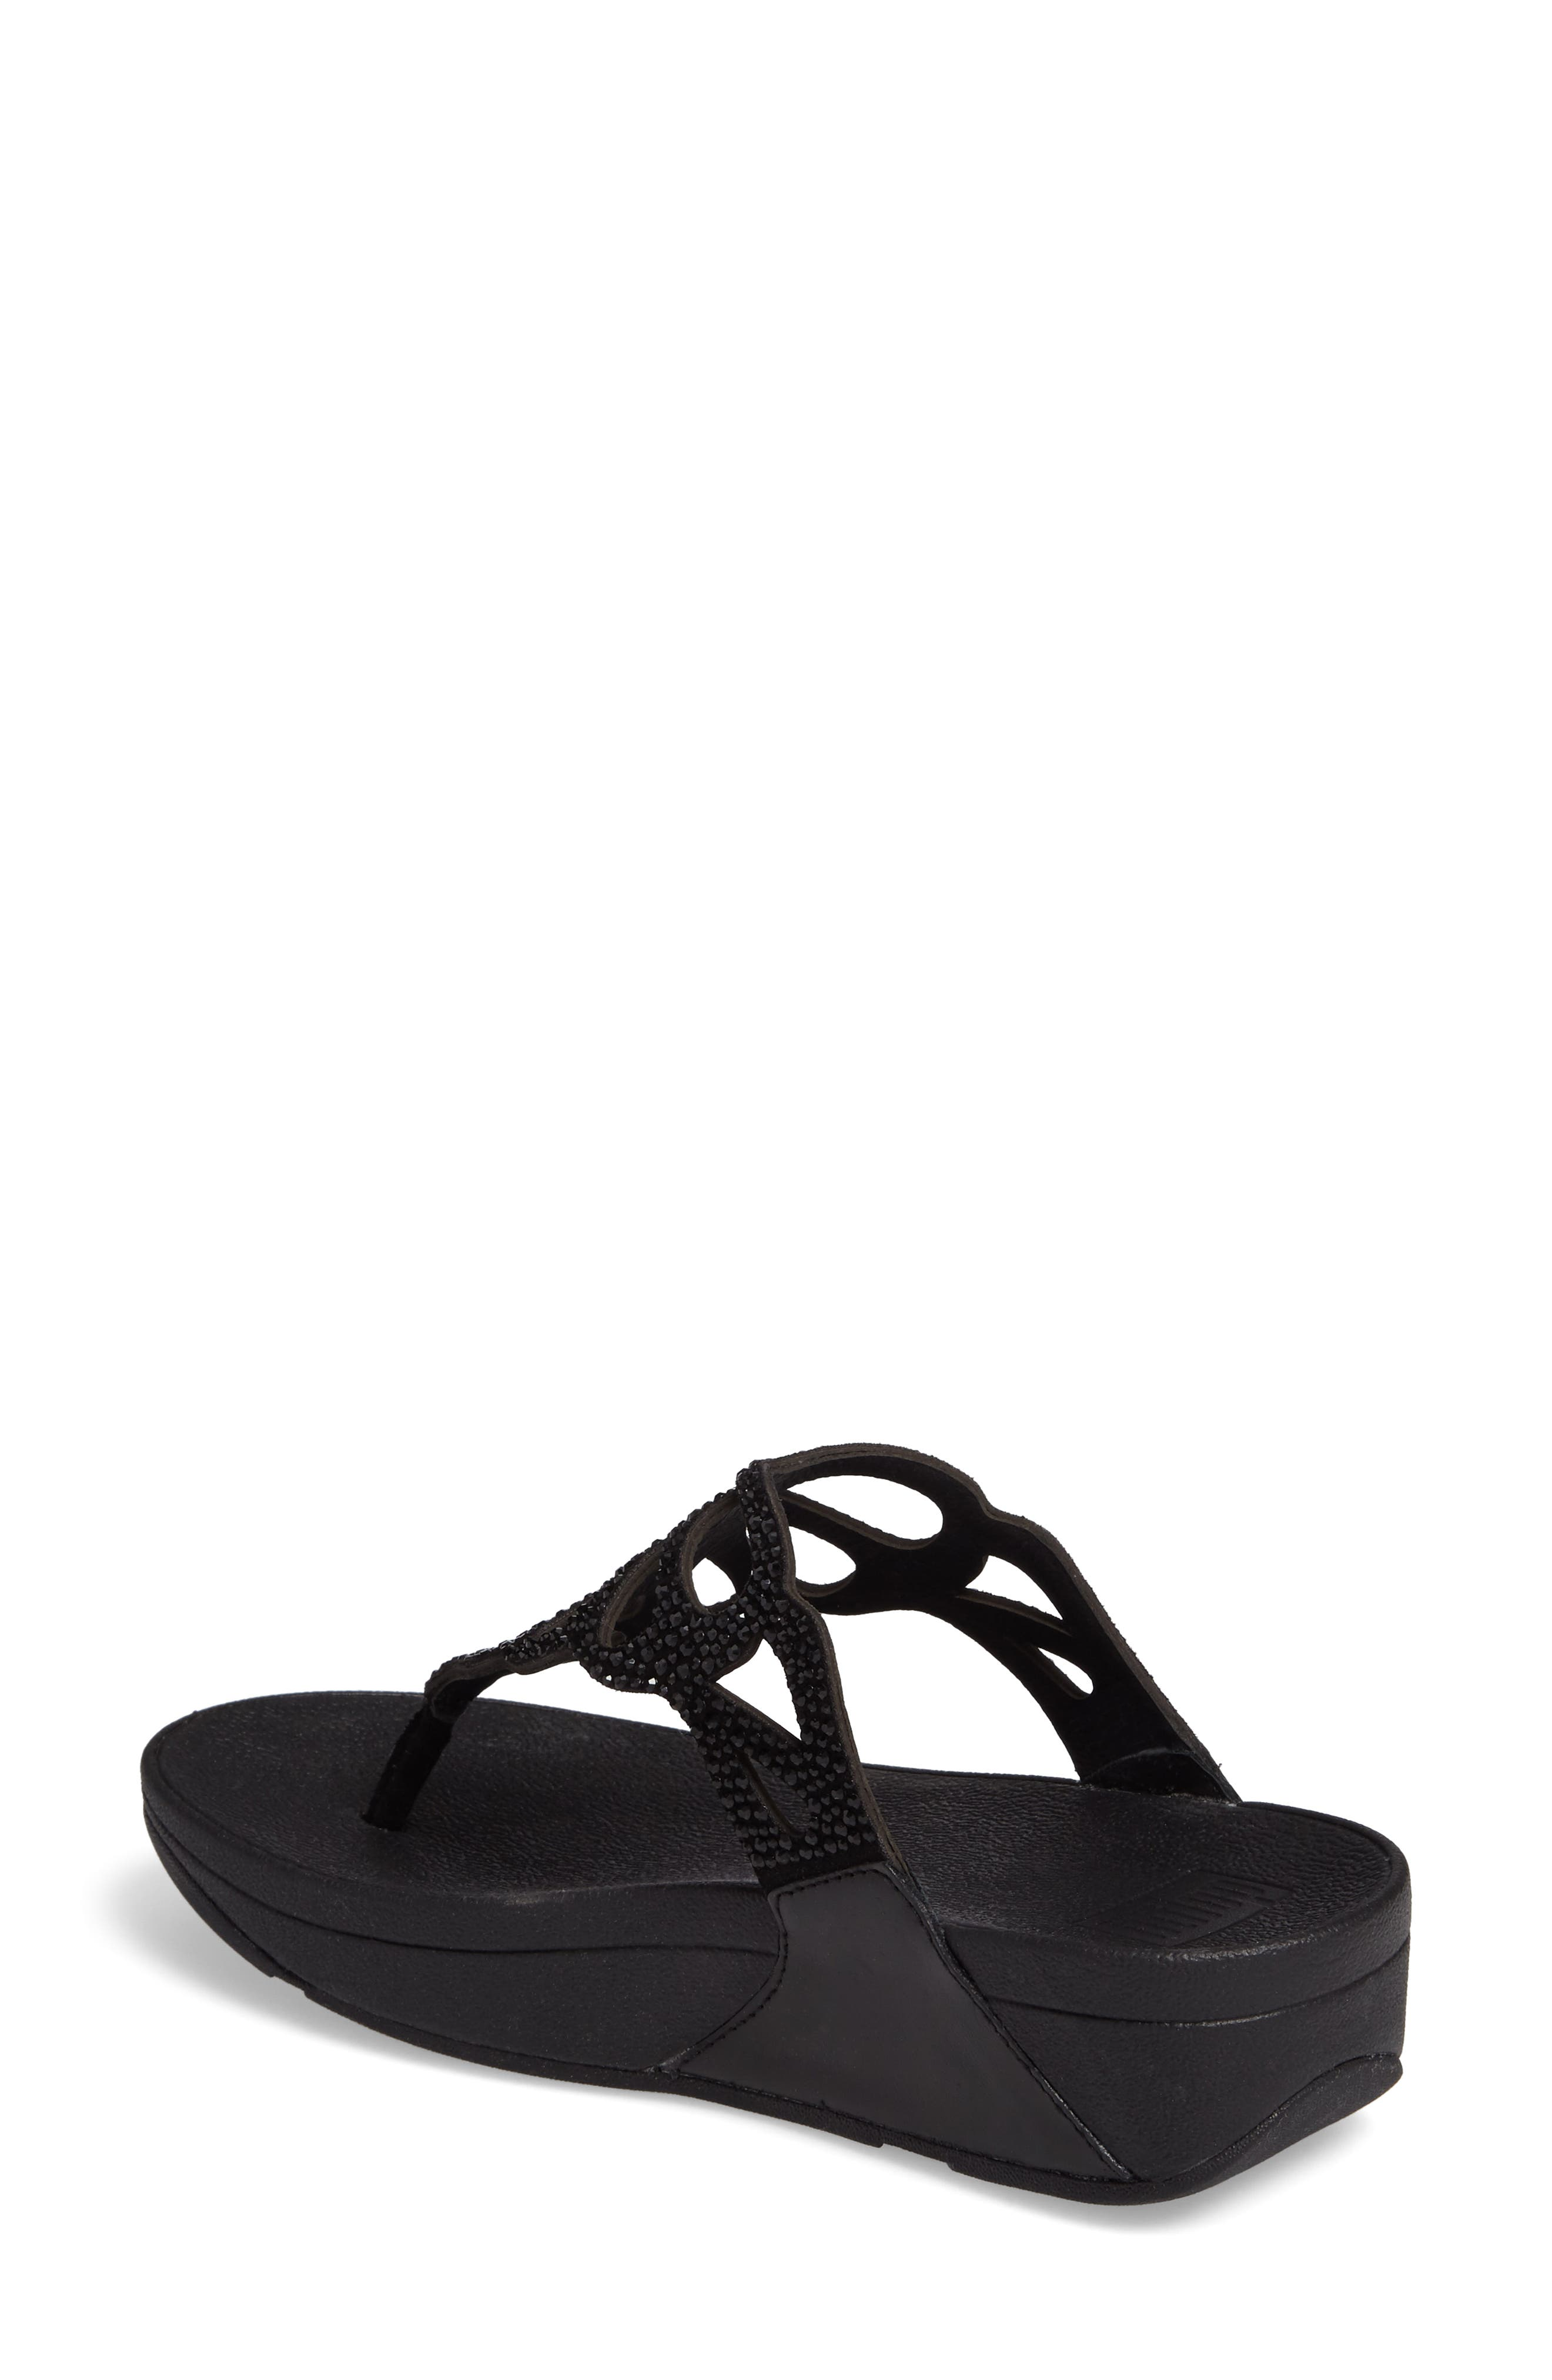 Alternate Image 2  - FitFlop Bumble Crystal Flip Flop (Women)